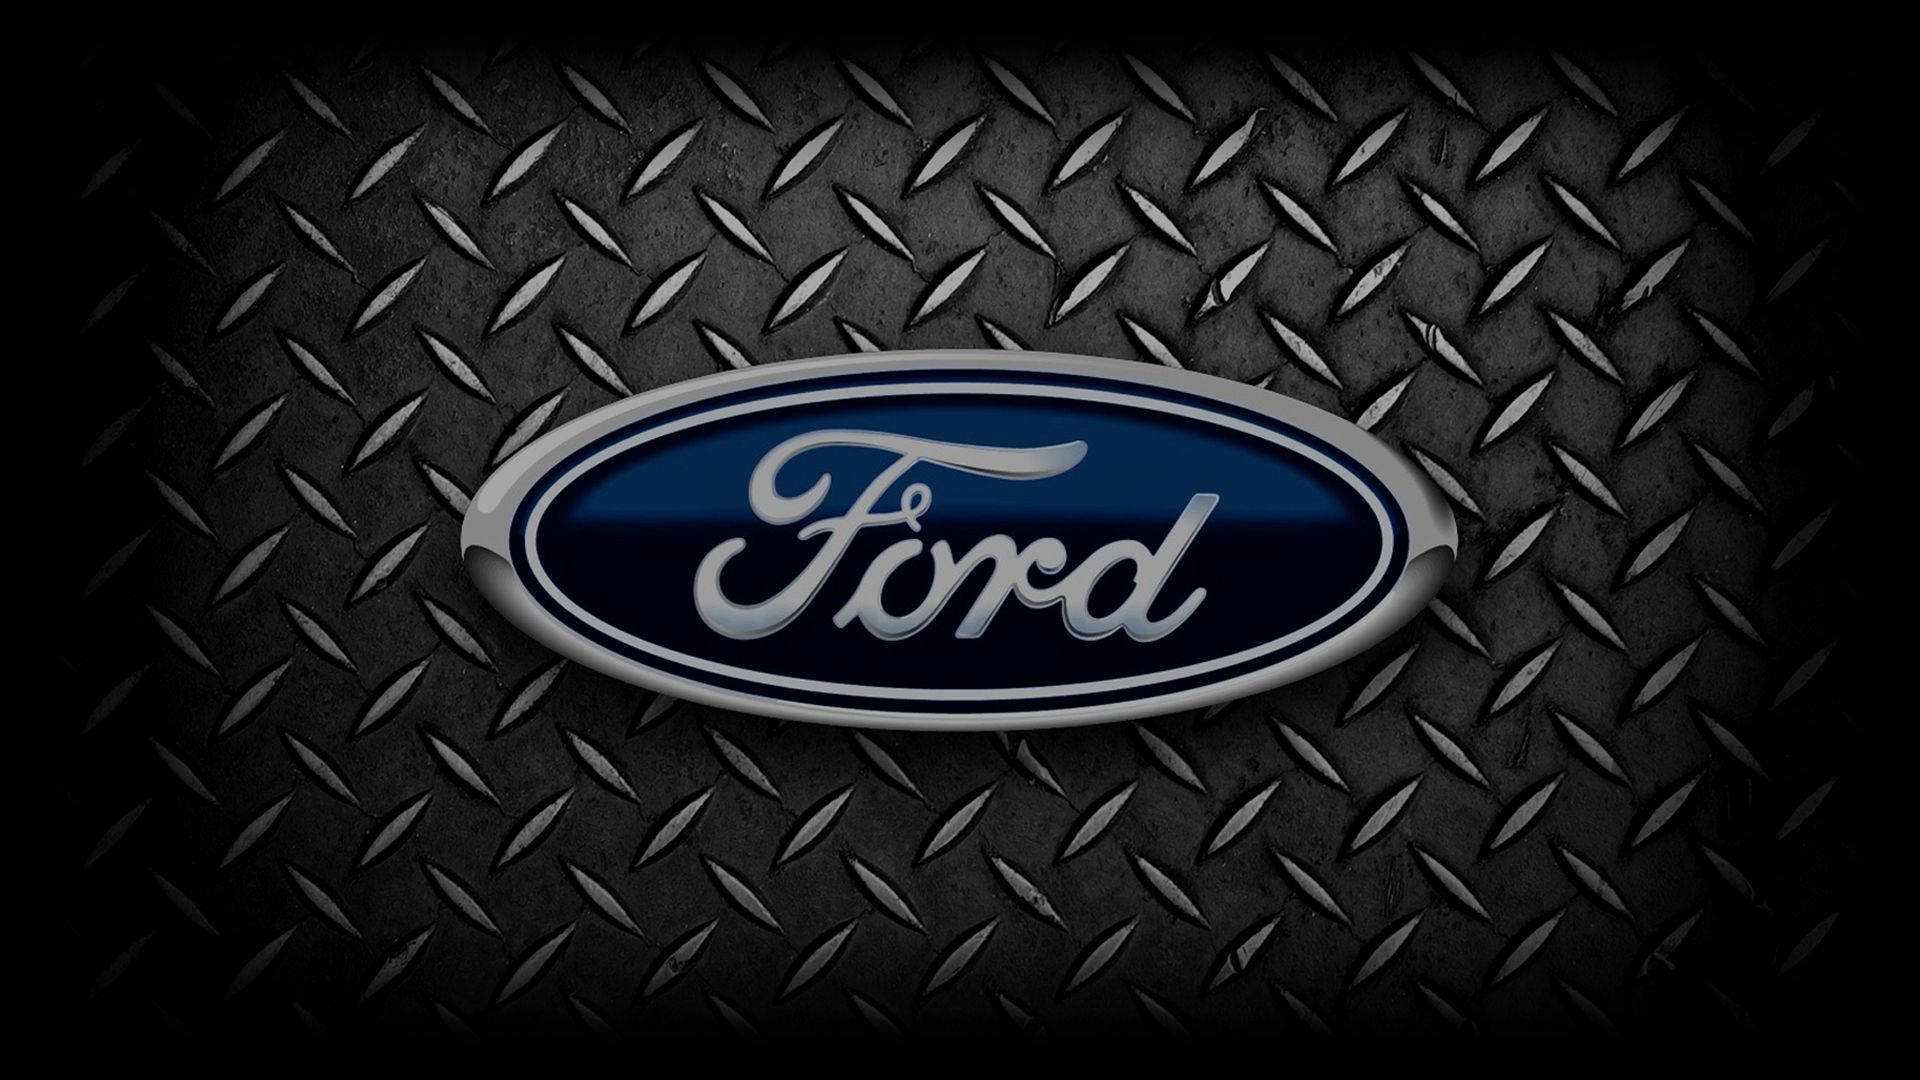 Ford Logo Wallpaper 1920 X 1080 Ford Logo Car Brands Logos